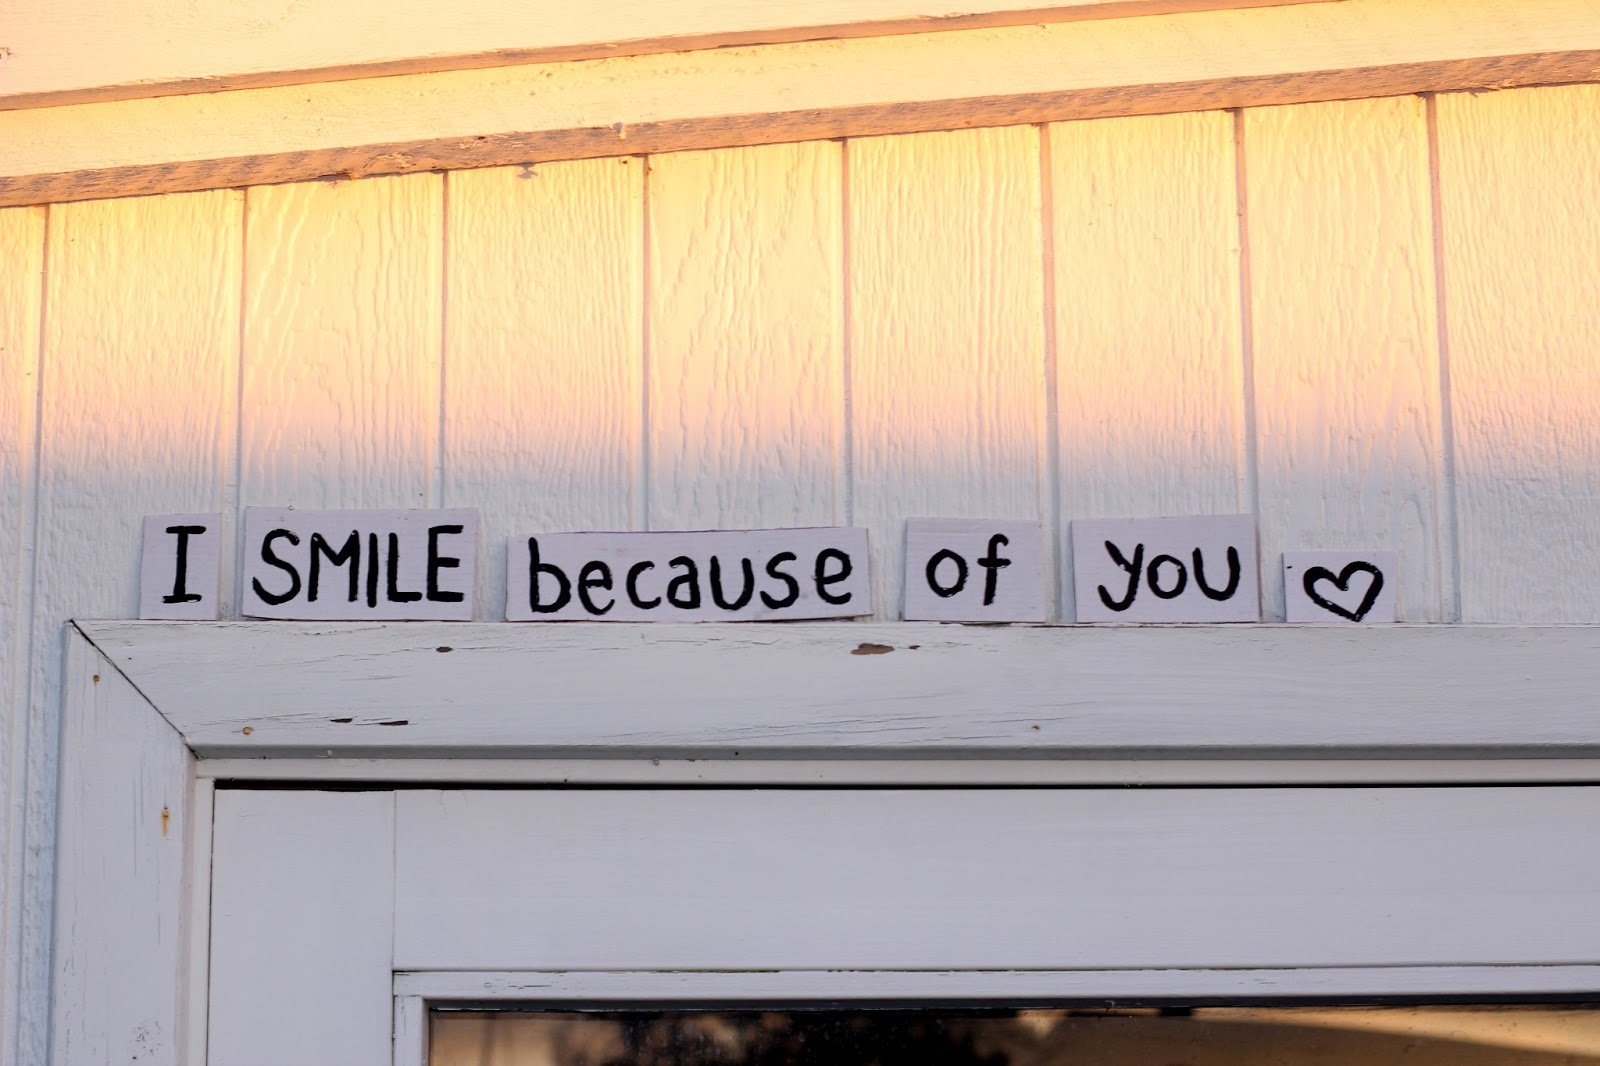 i smile because quotes tumblr images wallpapers pics pictures facebook covers tatoos tupac backgrounds cover photo